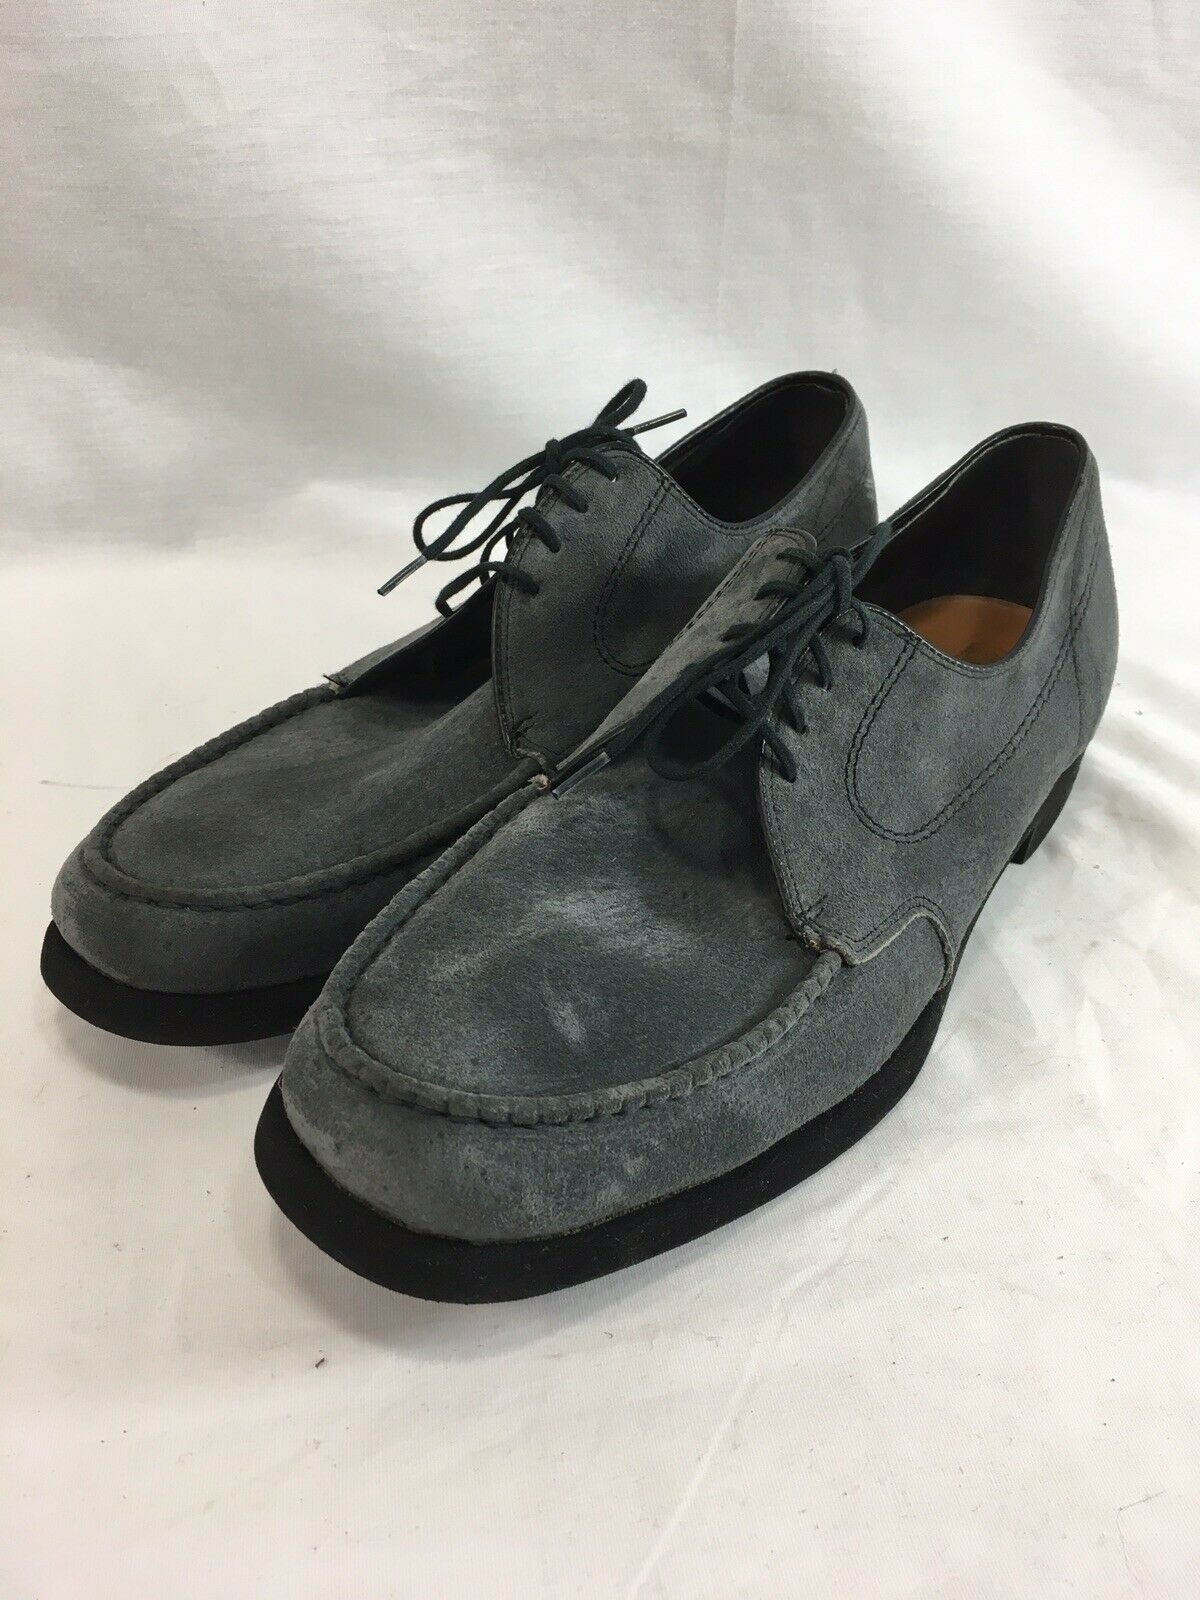 NOS VTG Hush Puppies shoes Oxfords Mens 10 M bluee Suede Lace Up Leather